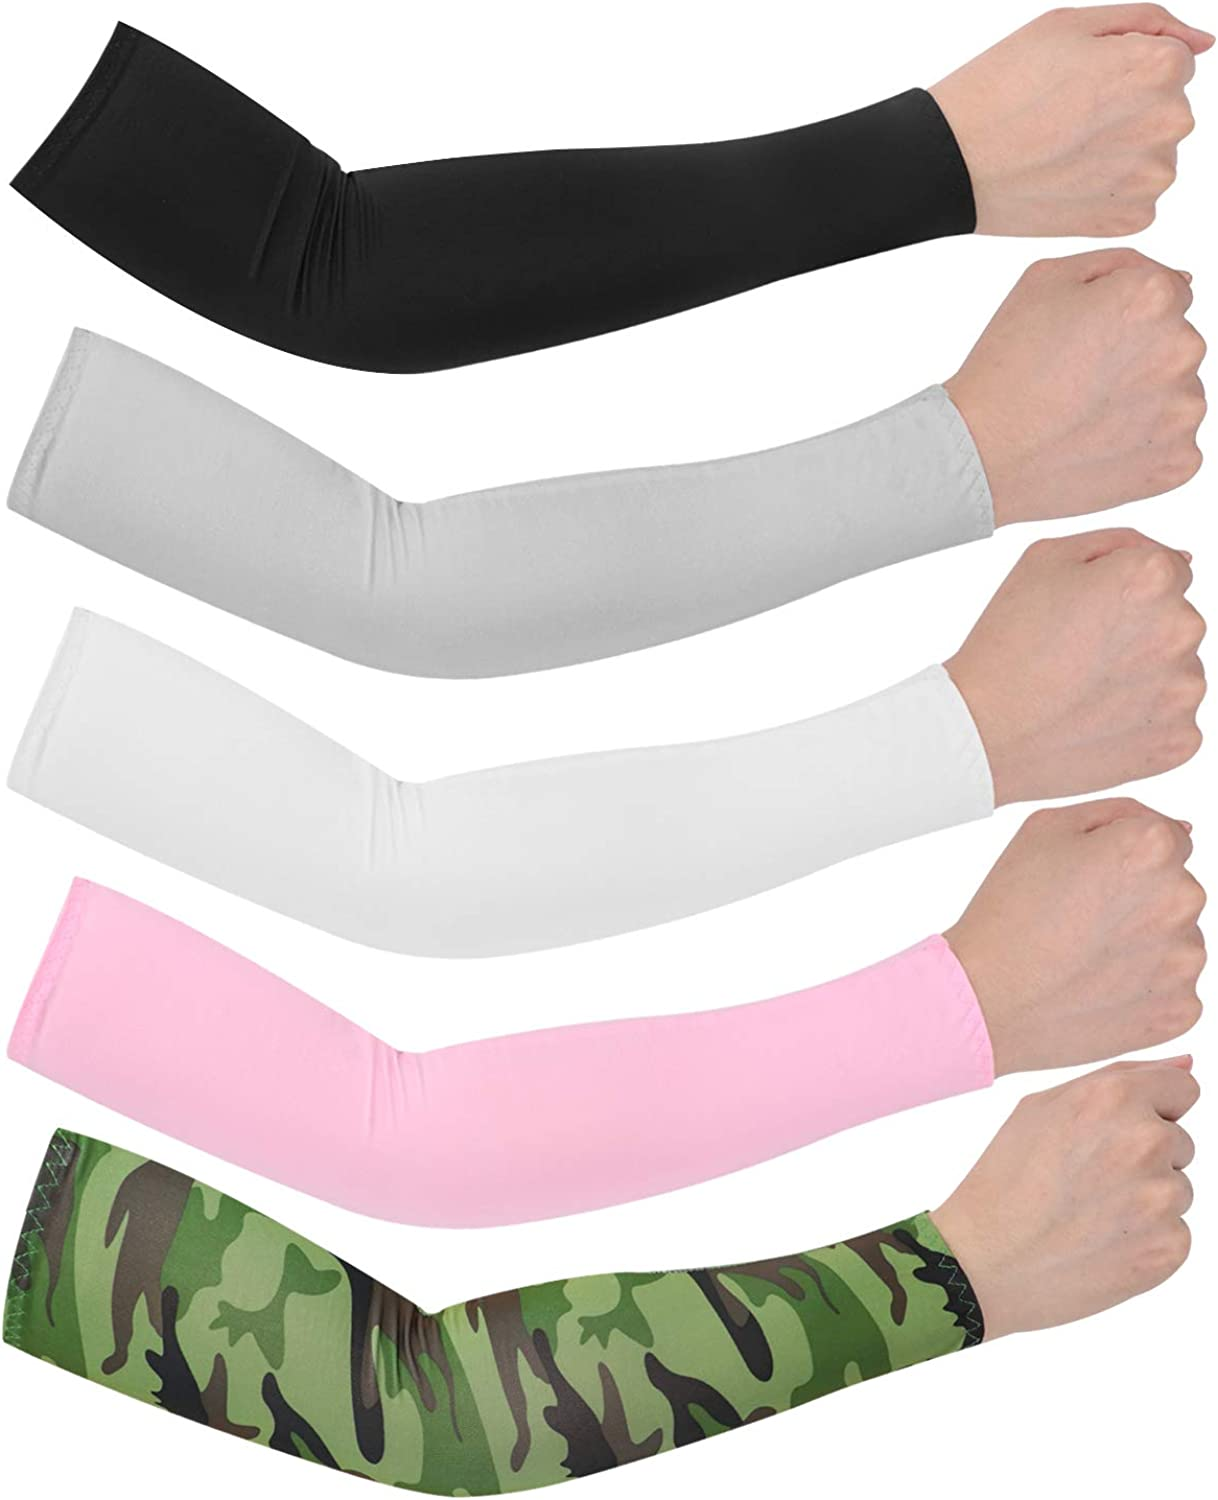 UV Sun Protection Cooling Sleeves Arm Sleeves for Men or Women Cycling Volleyball Baseball Basketball Golf Running Football 5 Pairs: Clothing